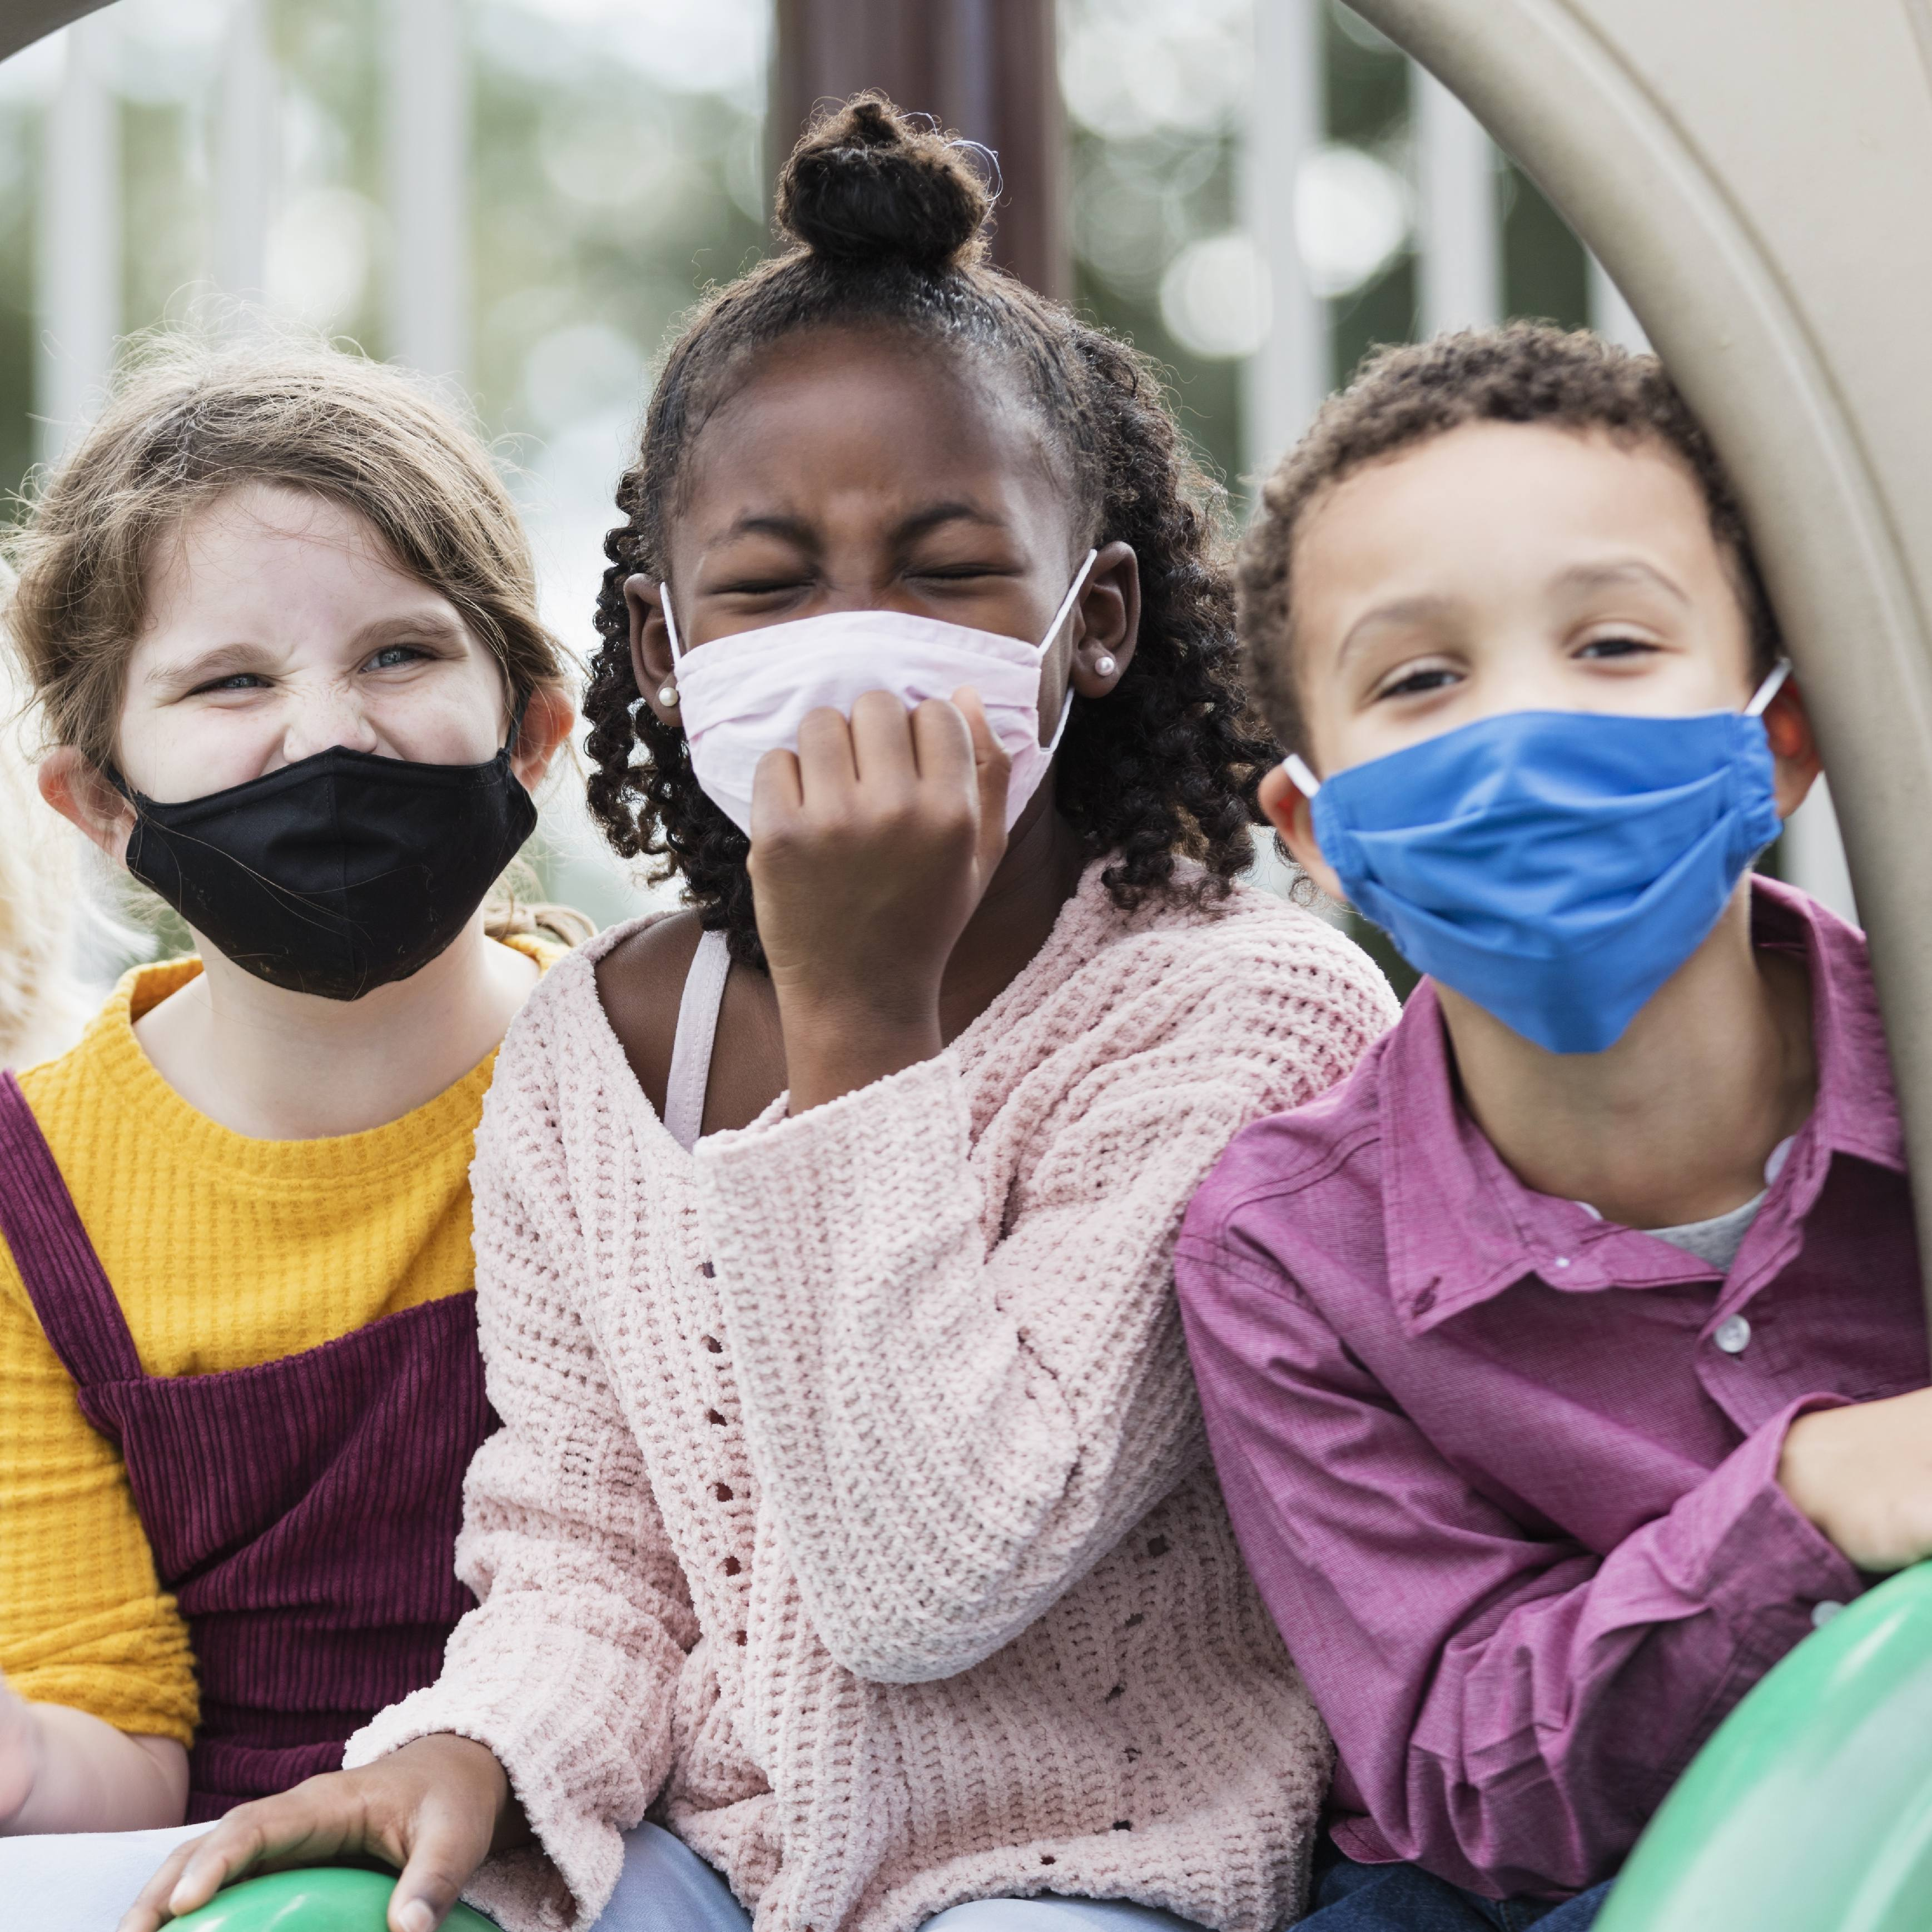 a diverse group of elementary school aged children, wearing masks and outside on a playground